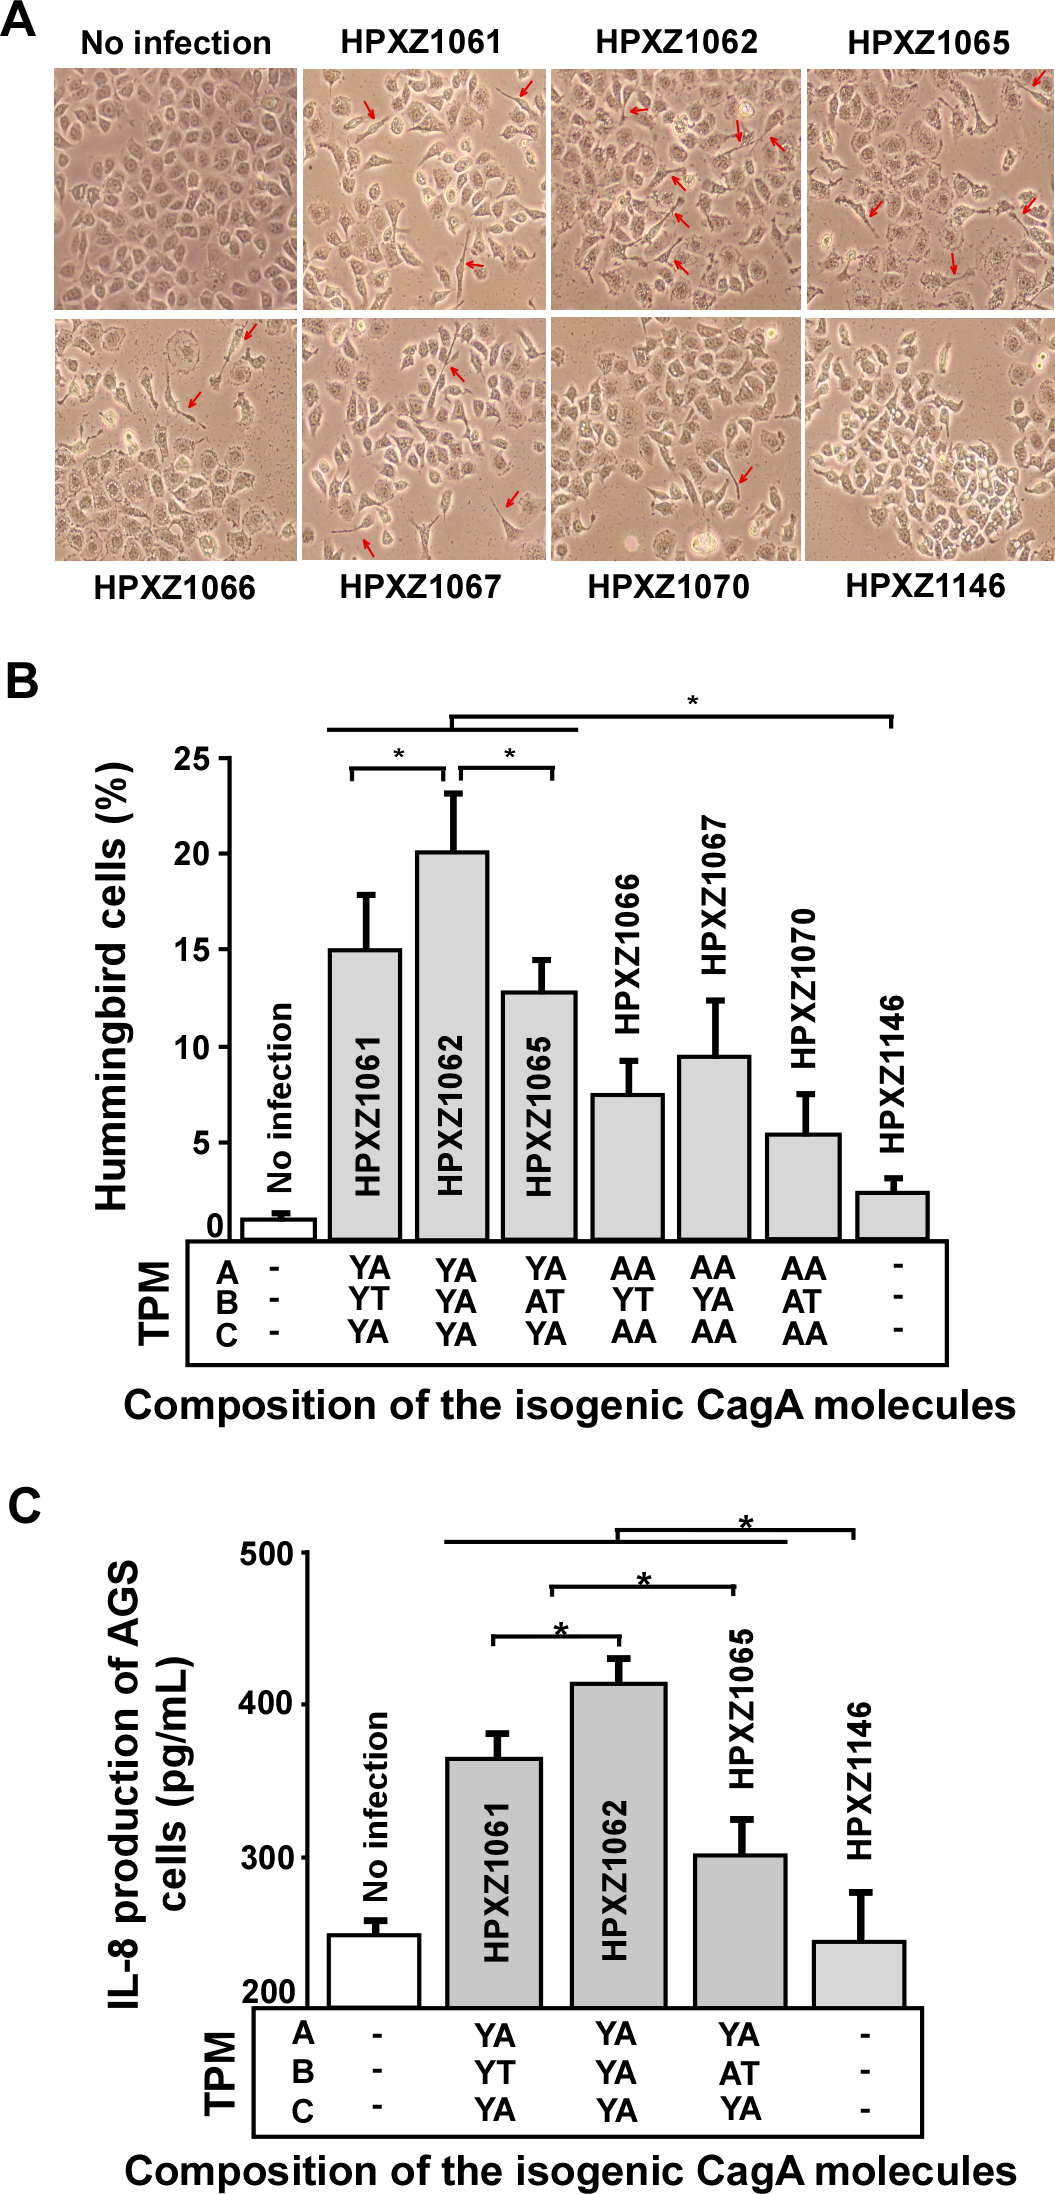 Analysis of the hummingbird phenotype and IL-8 induction after co-culture of human AGS cells with isogenic <i>H. pylori</i> strains containing the engineered CagA molecules.